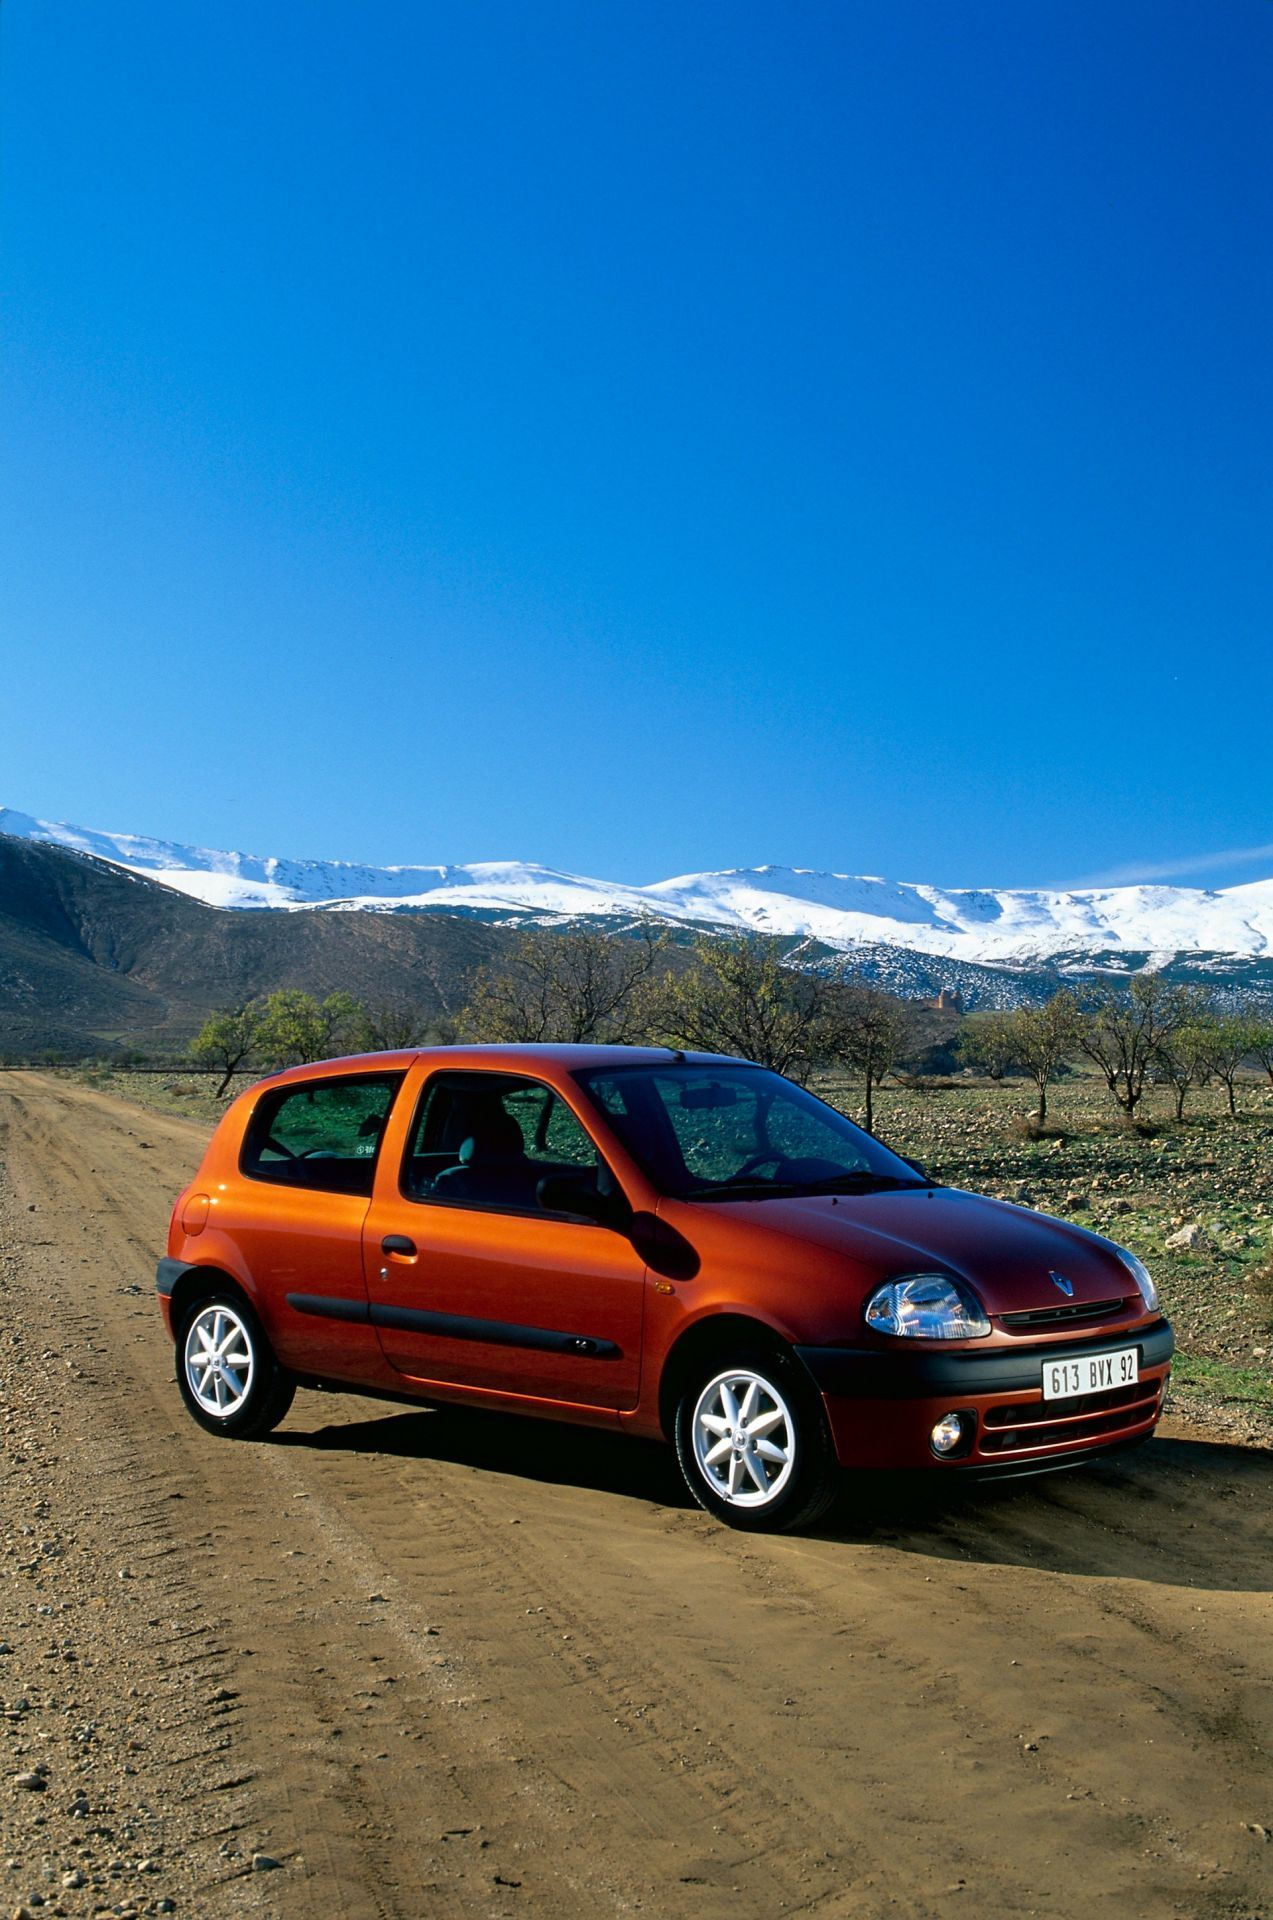 2020-30-years-of-Renault-CLIO-Renault-CLIO-2-1998-2005-4